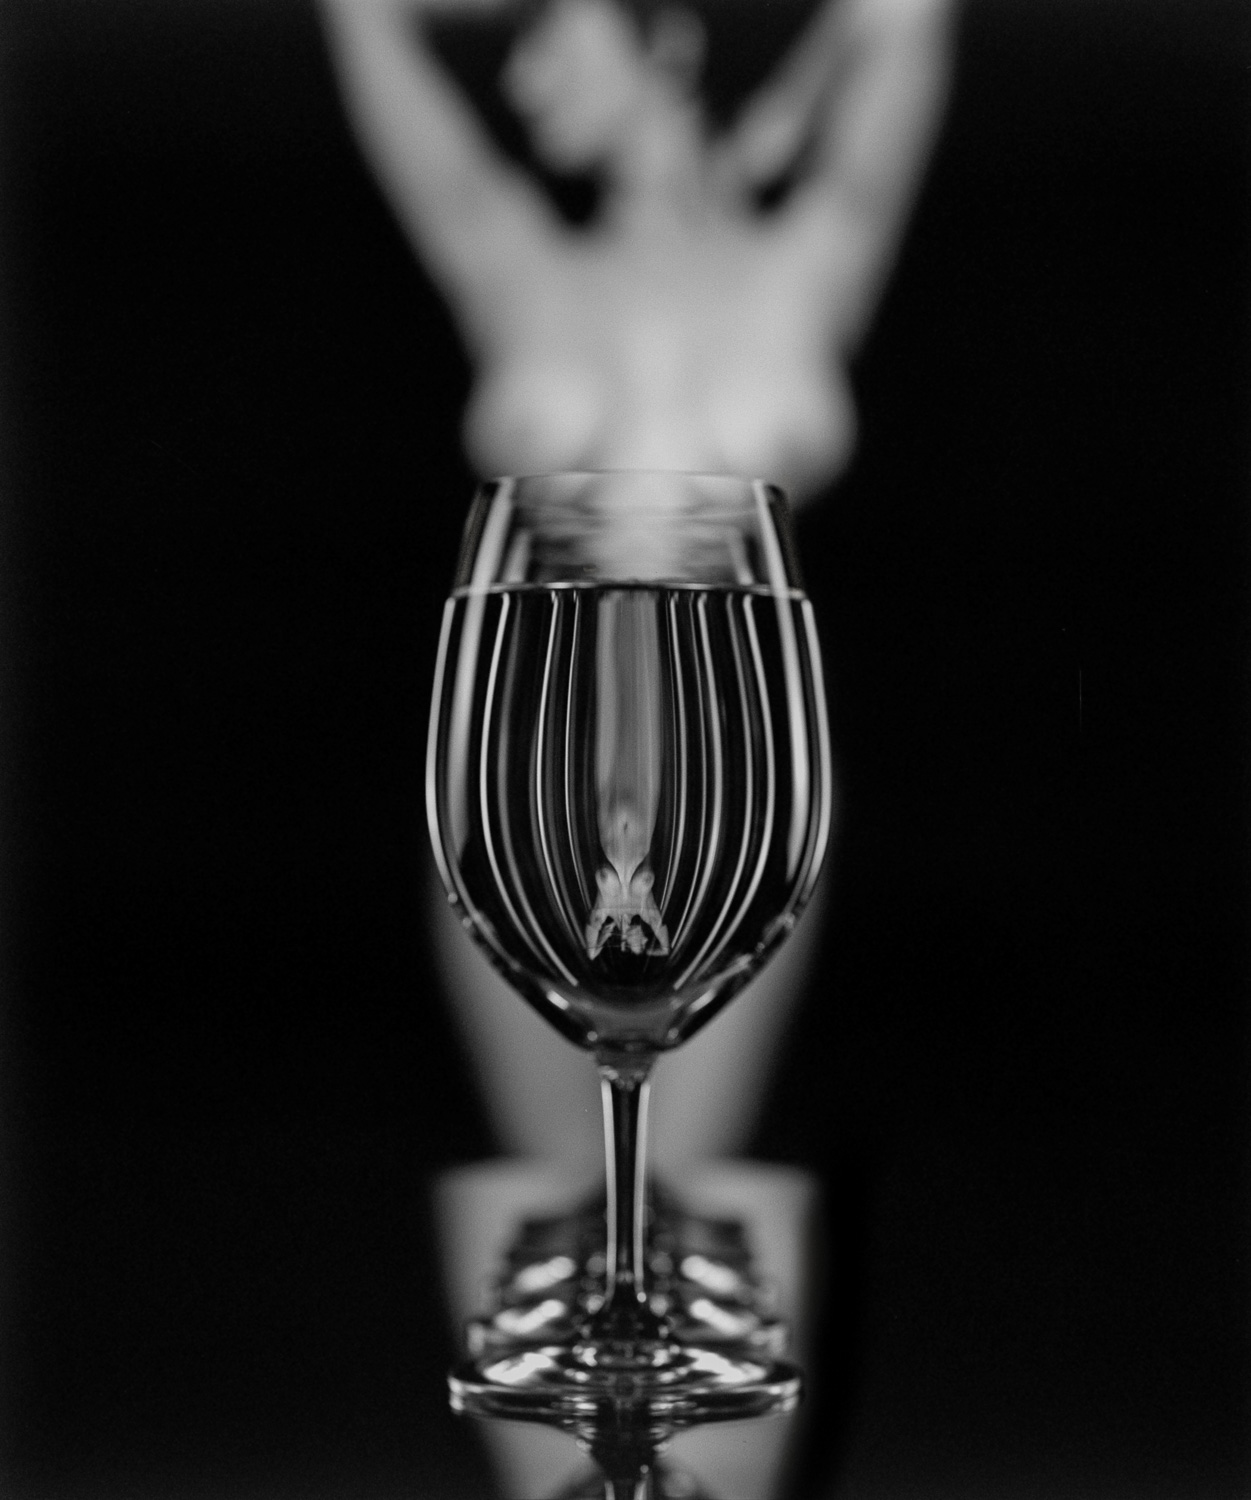 Black and white nudes, fine art photography, nude art prints, bw fine art, refraction, reflection, in glass, wine, feminin, breasts, abstract, art nudes